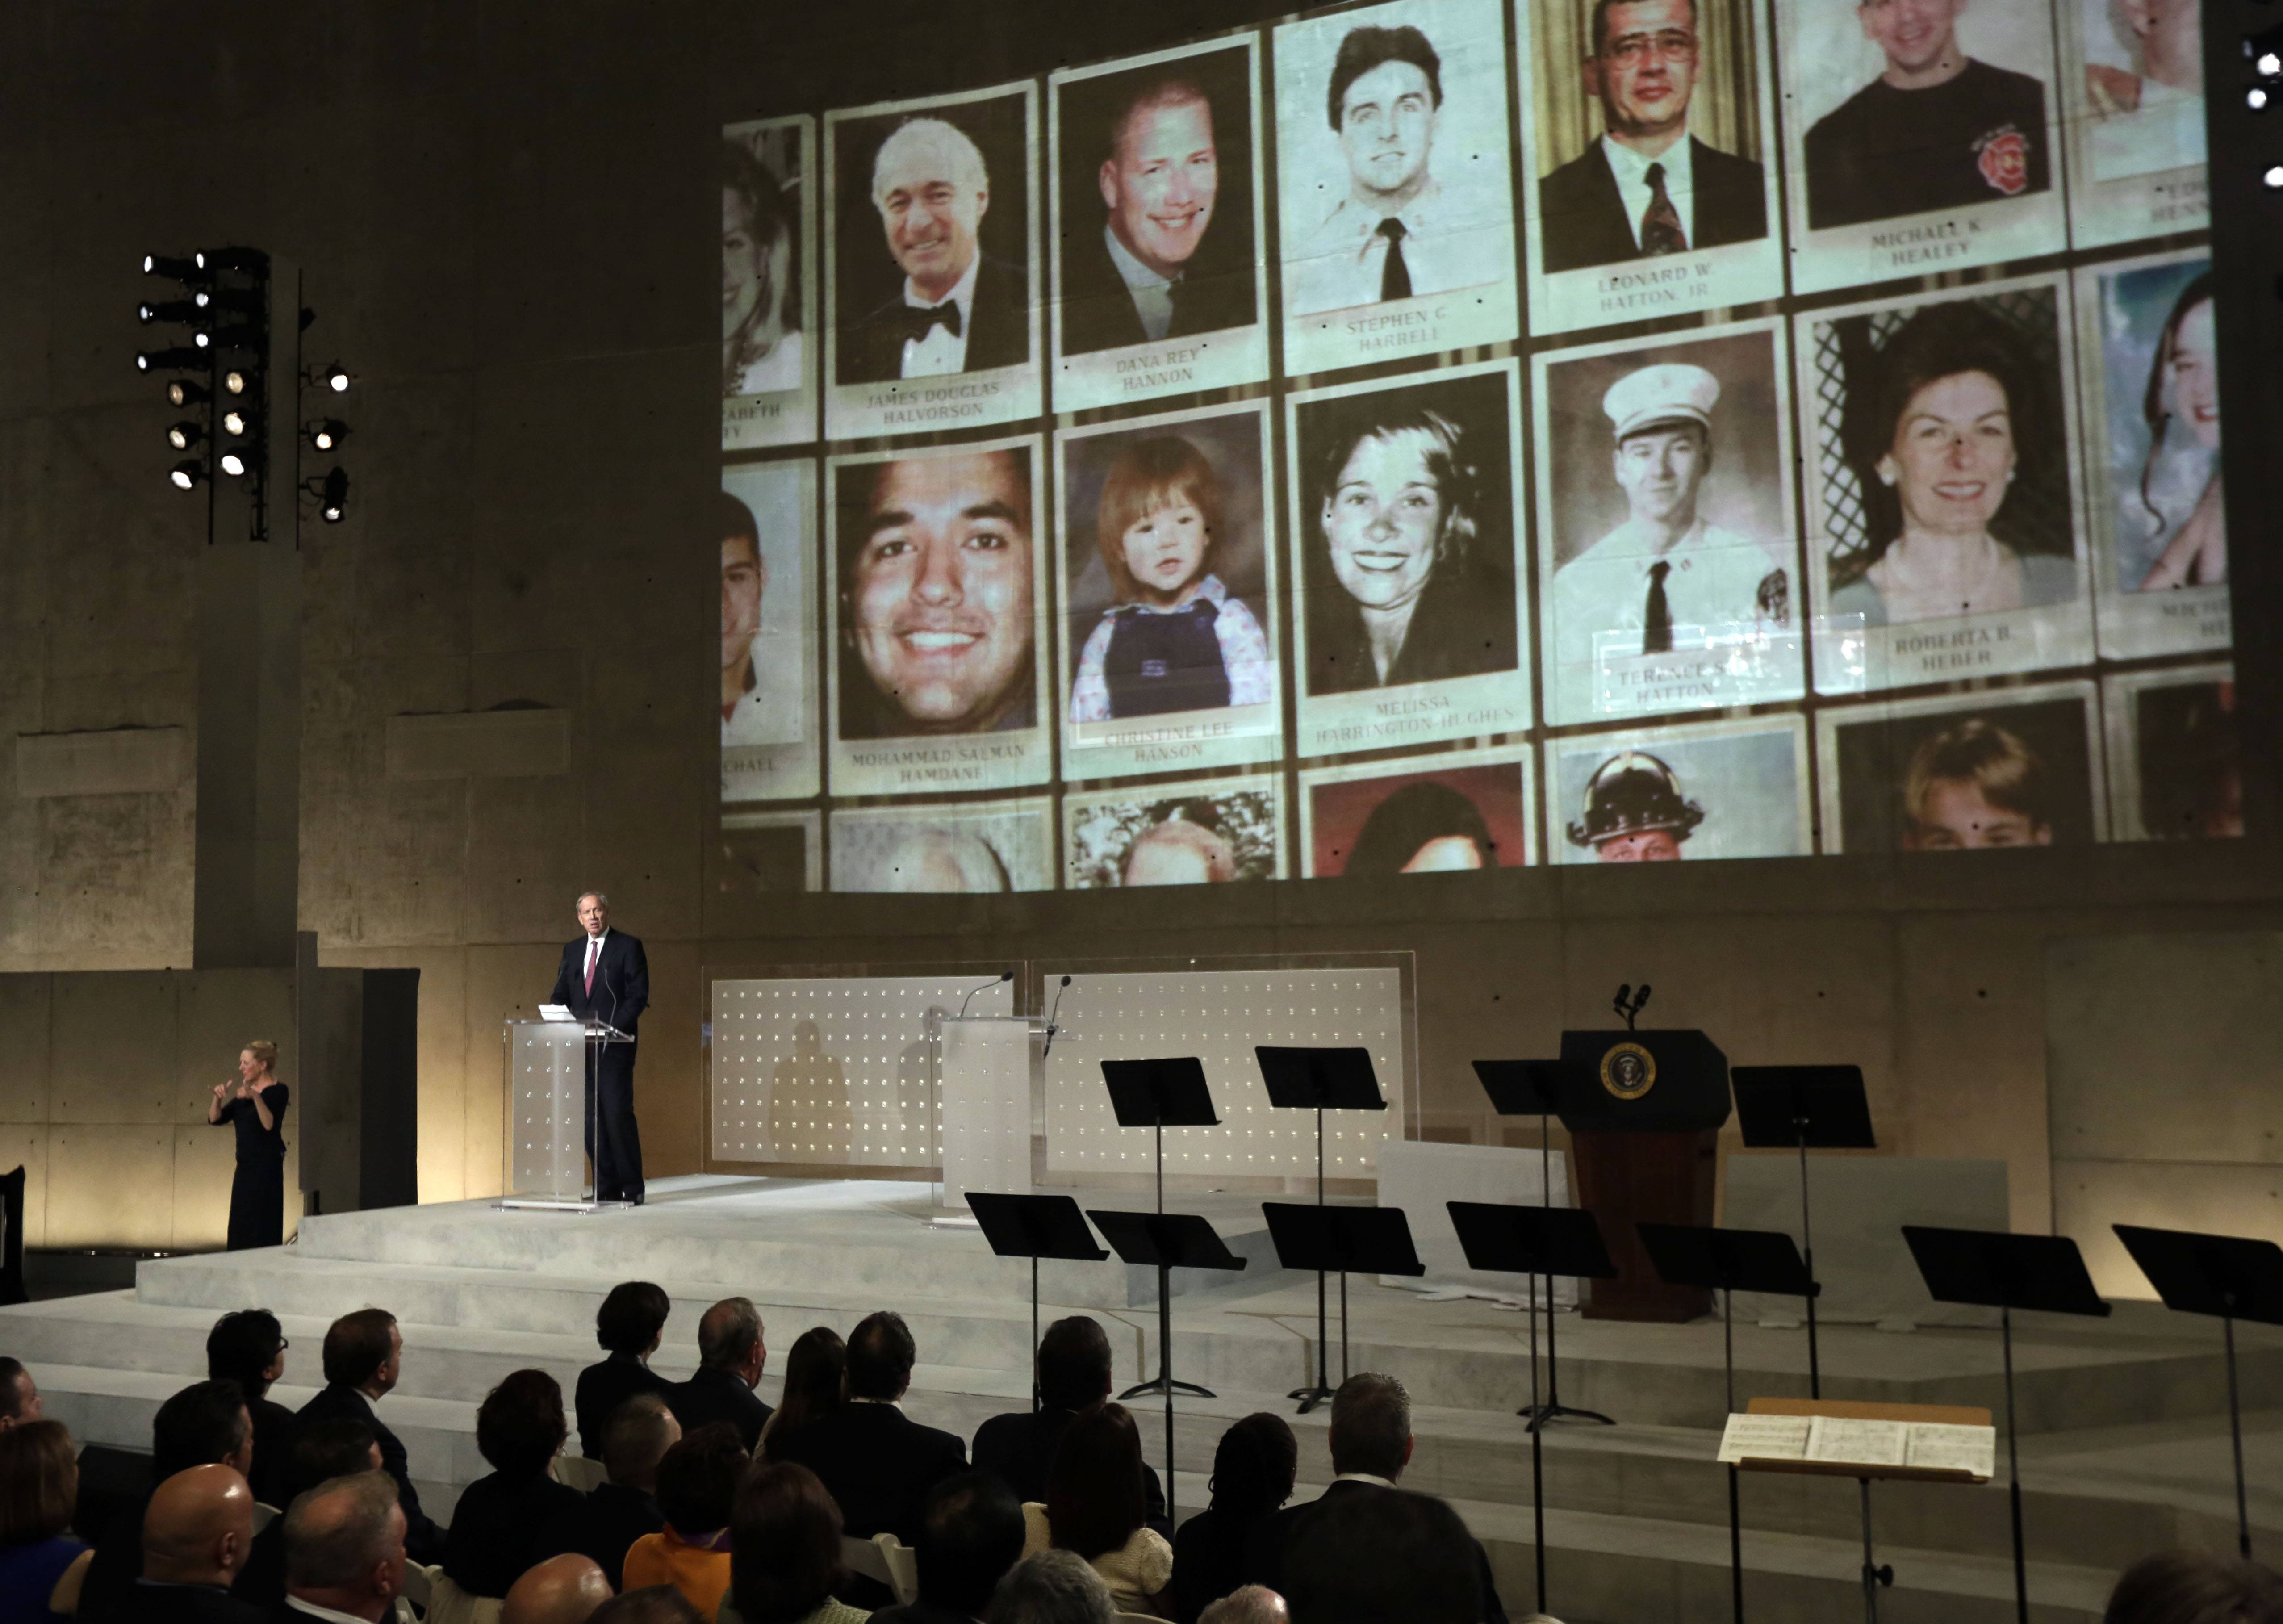 Former New York Gov. George Pataki speaks as photos of 9/11 victims are projected, during the dedication ceremony.